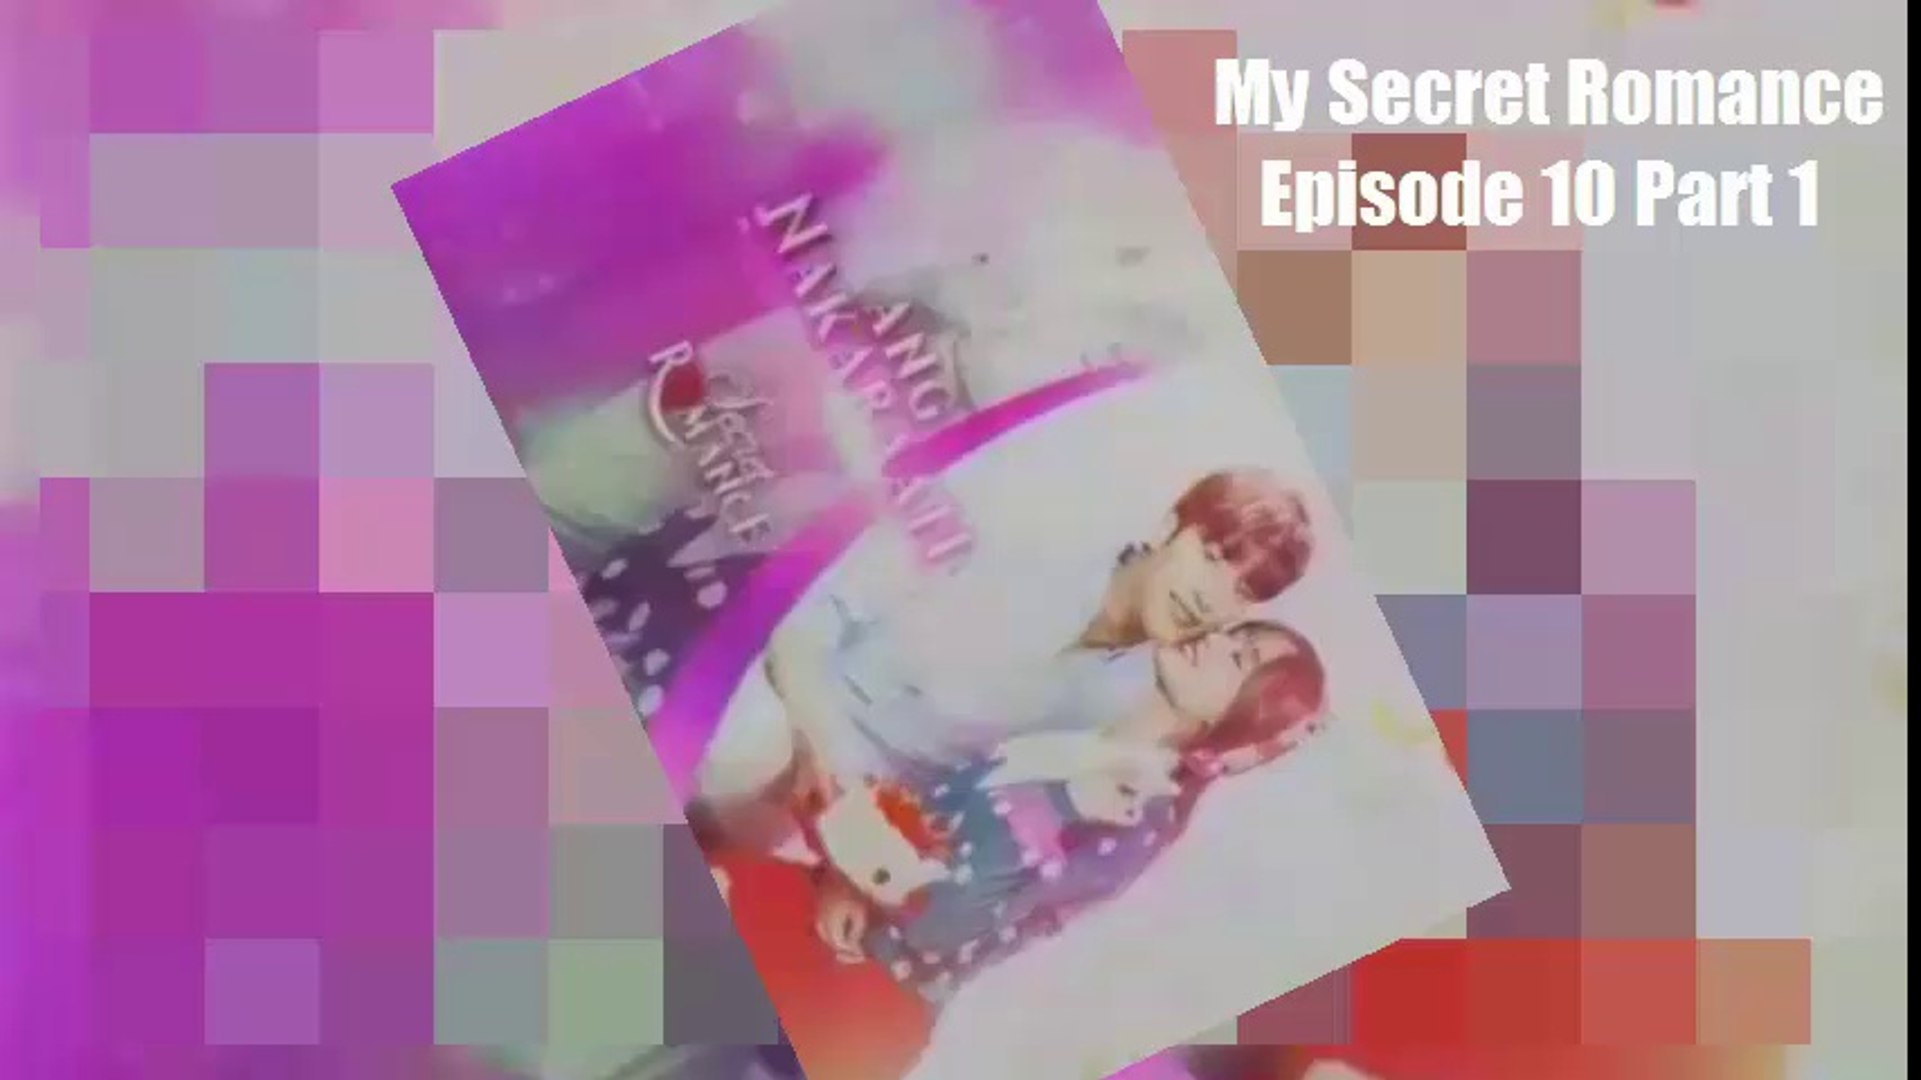 My Secret Romance Tagalog Dubbed Ep10 Part 1